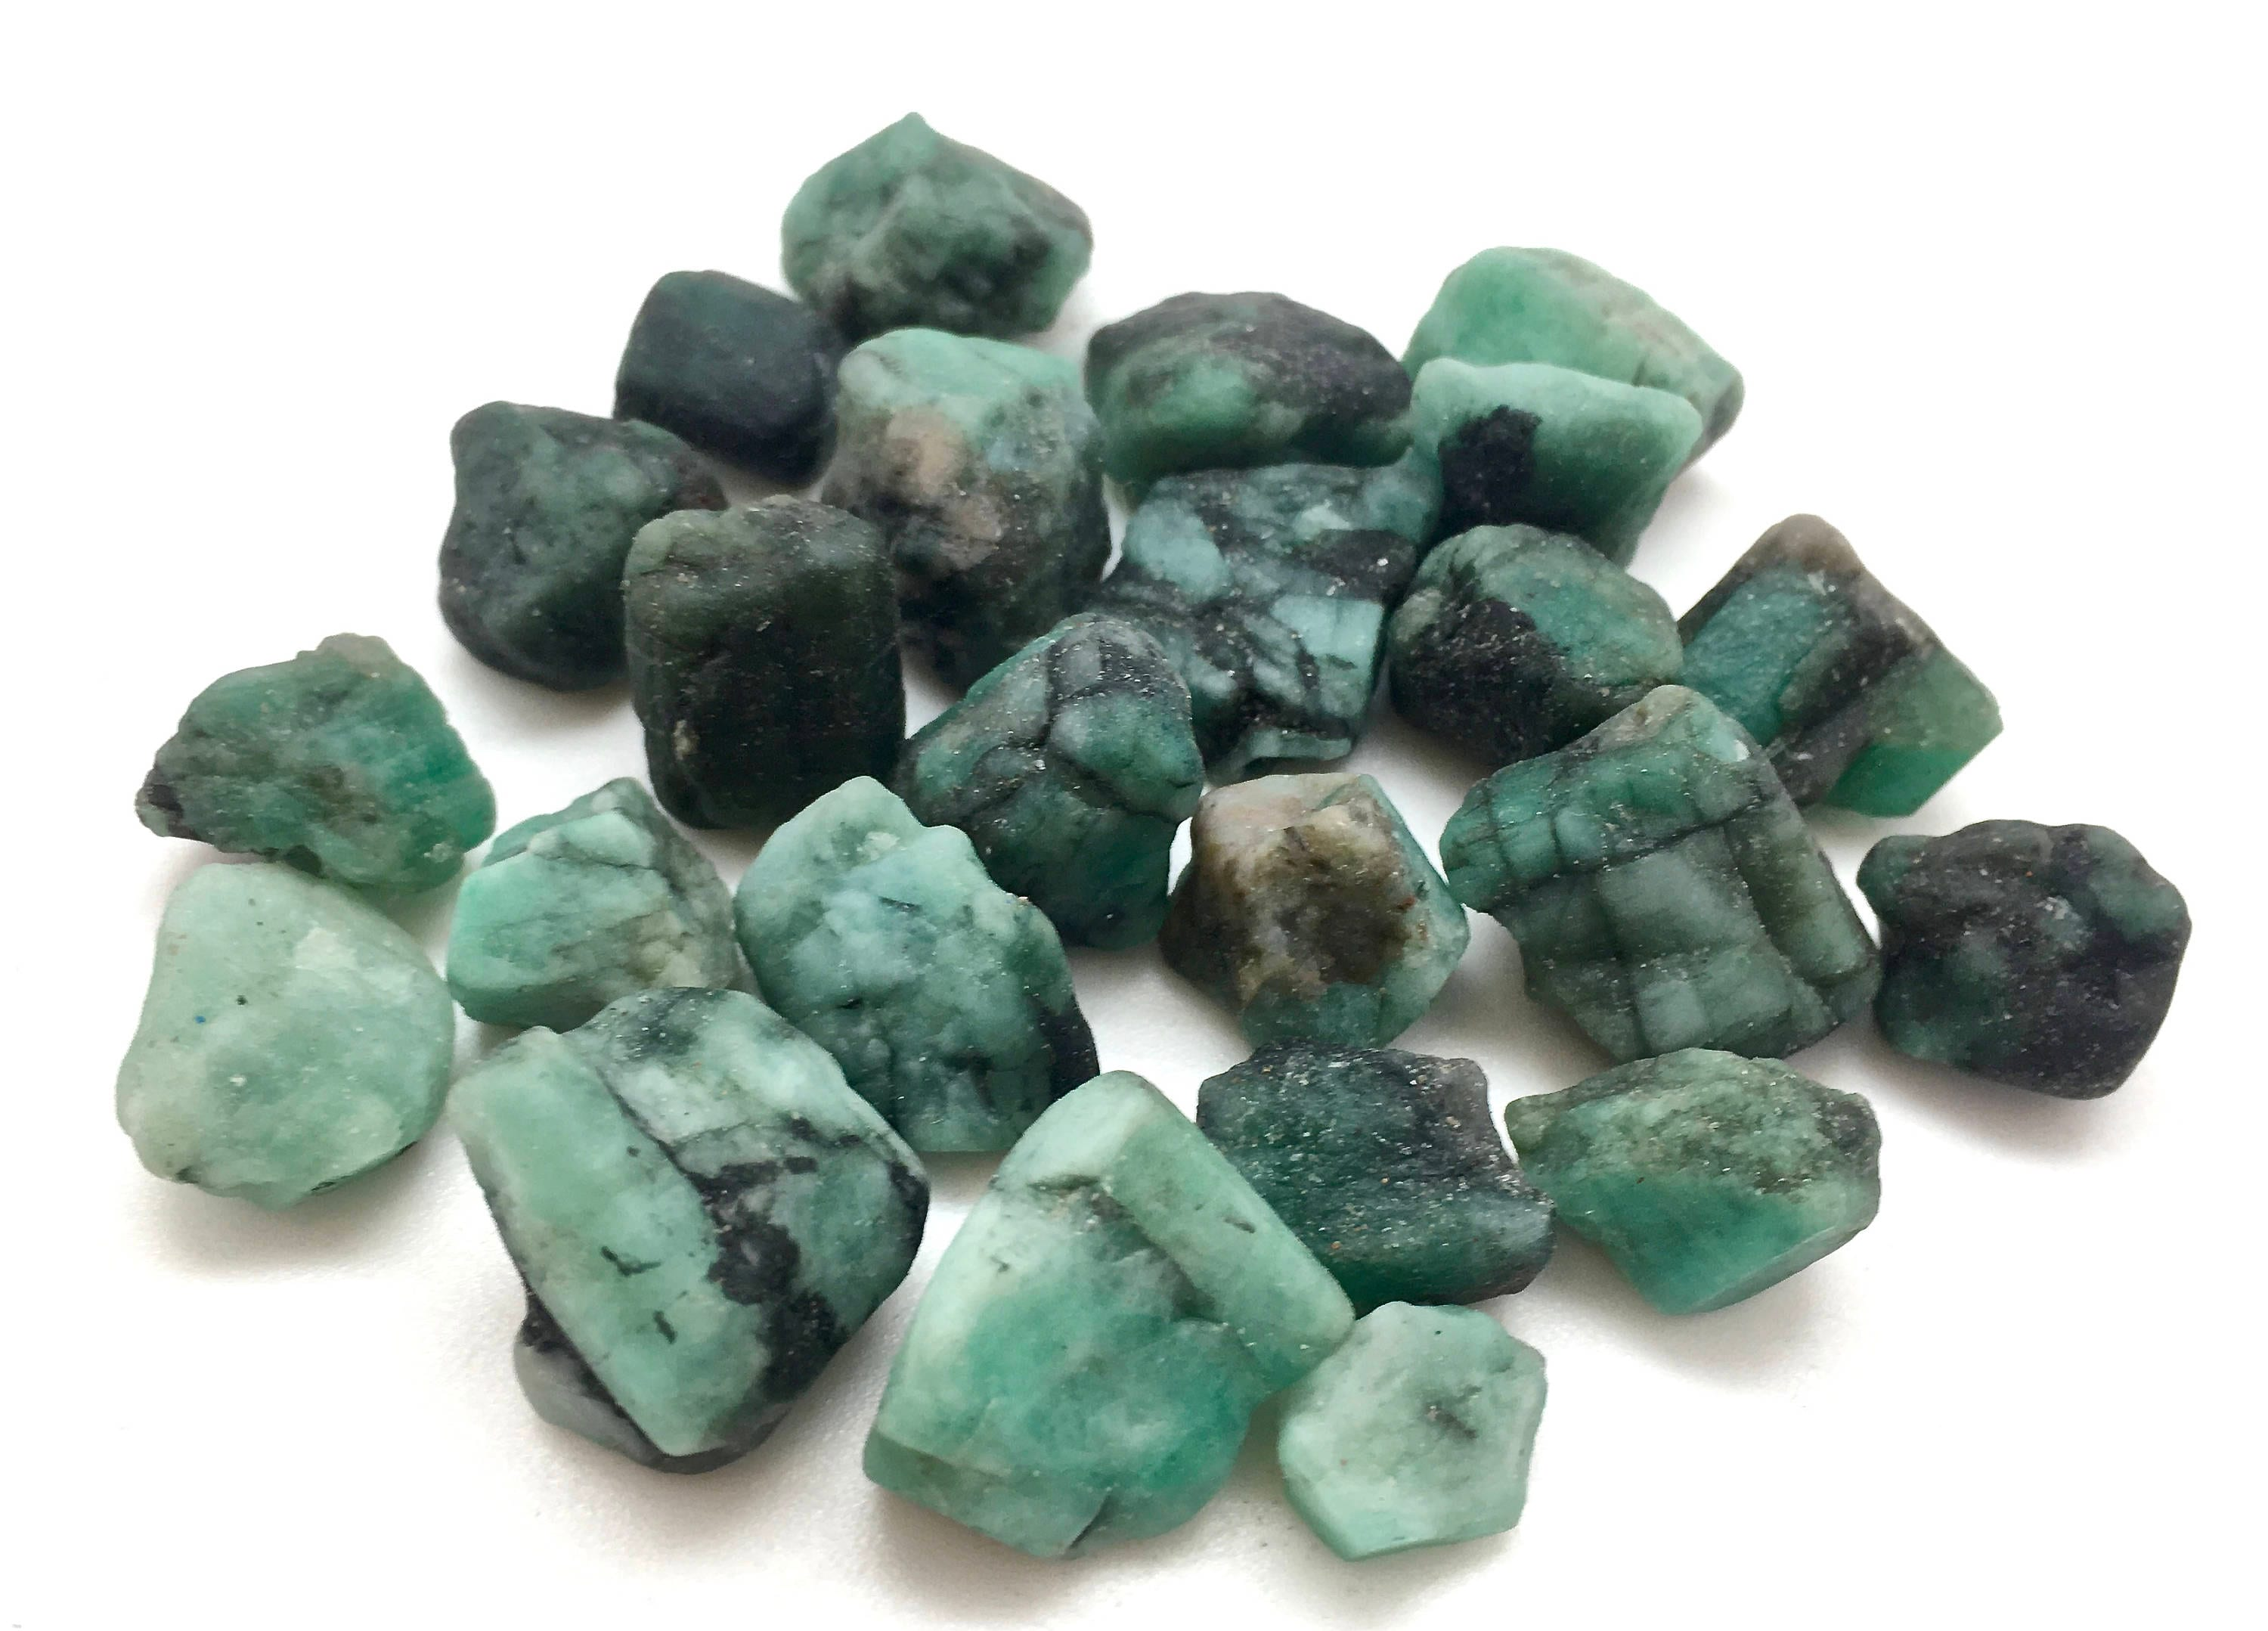 emerald stone elune most and of uses globally meanings s alongside commonly blue poet other is beryl four crystal the meaning found gemstone quartz gems usually